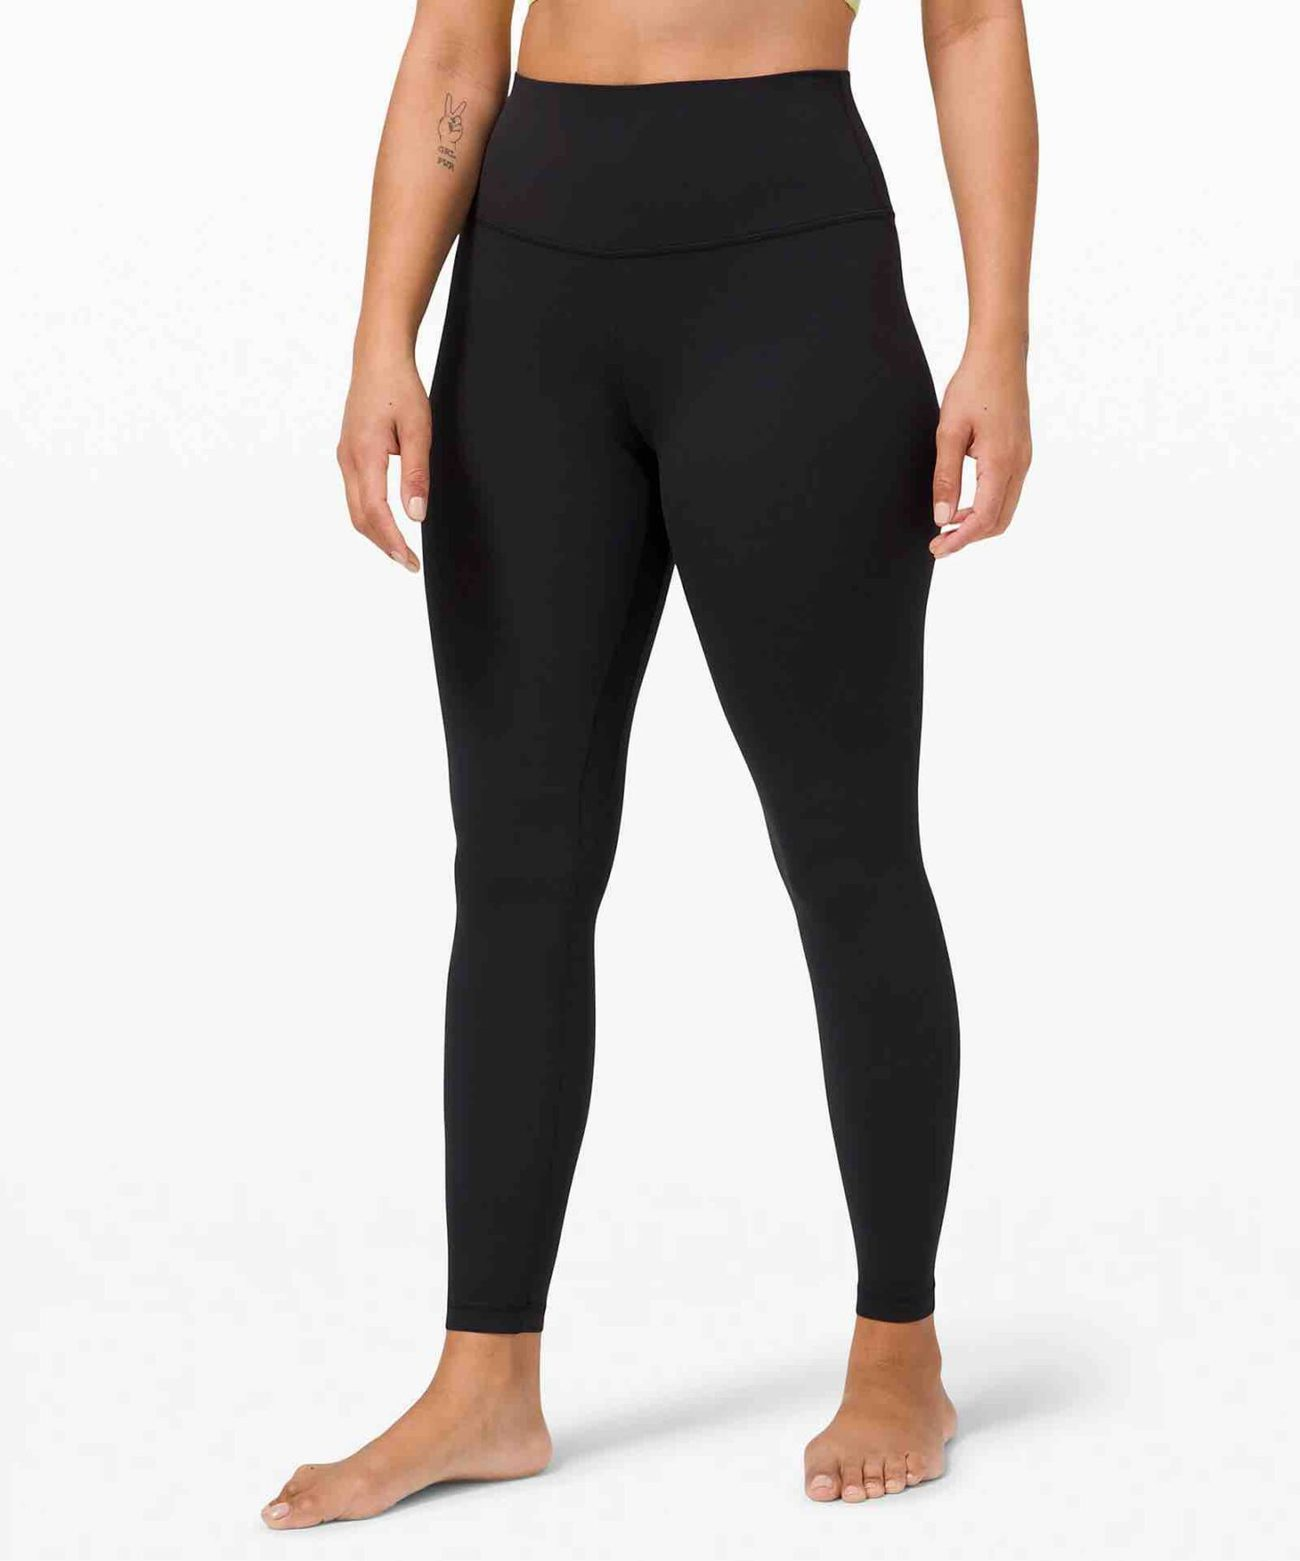 lululemon align leggings review - Are Lululemon Align leggings REALLY worth it? I tried the Lululemon yoga pants for one year. Read this detailed review to learn more about my experience.